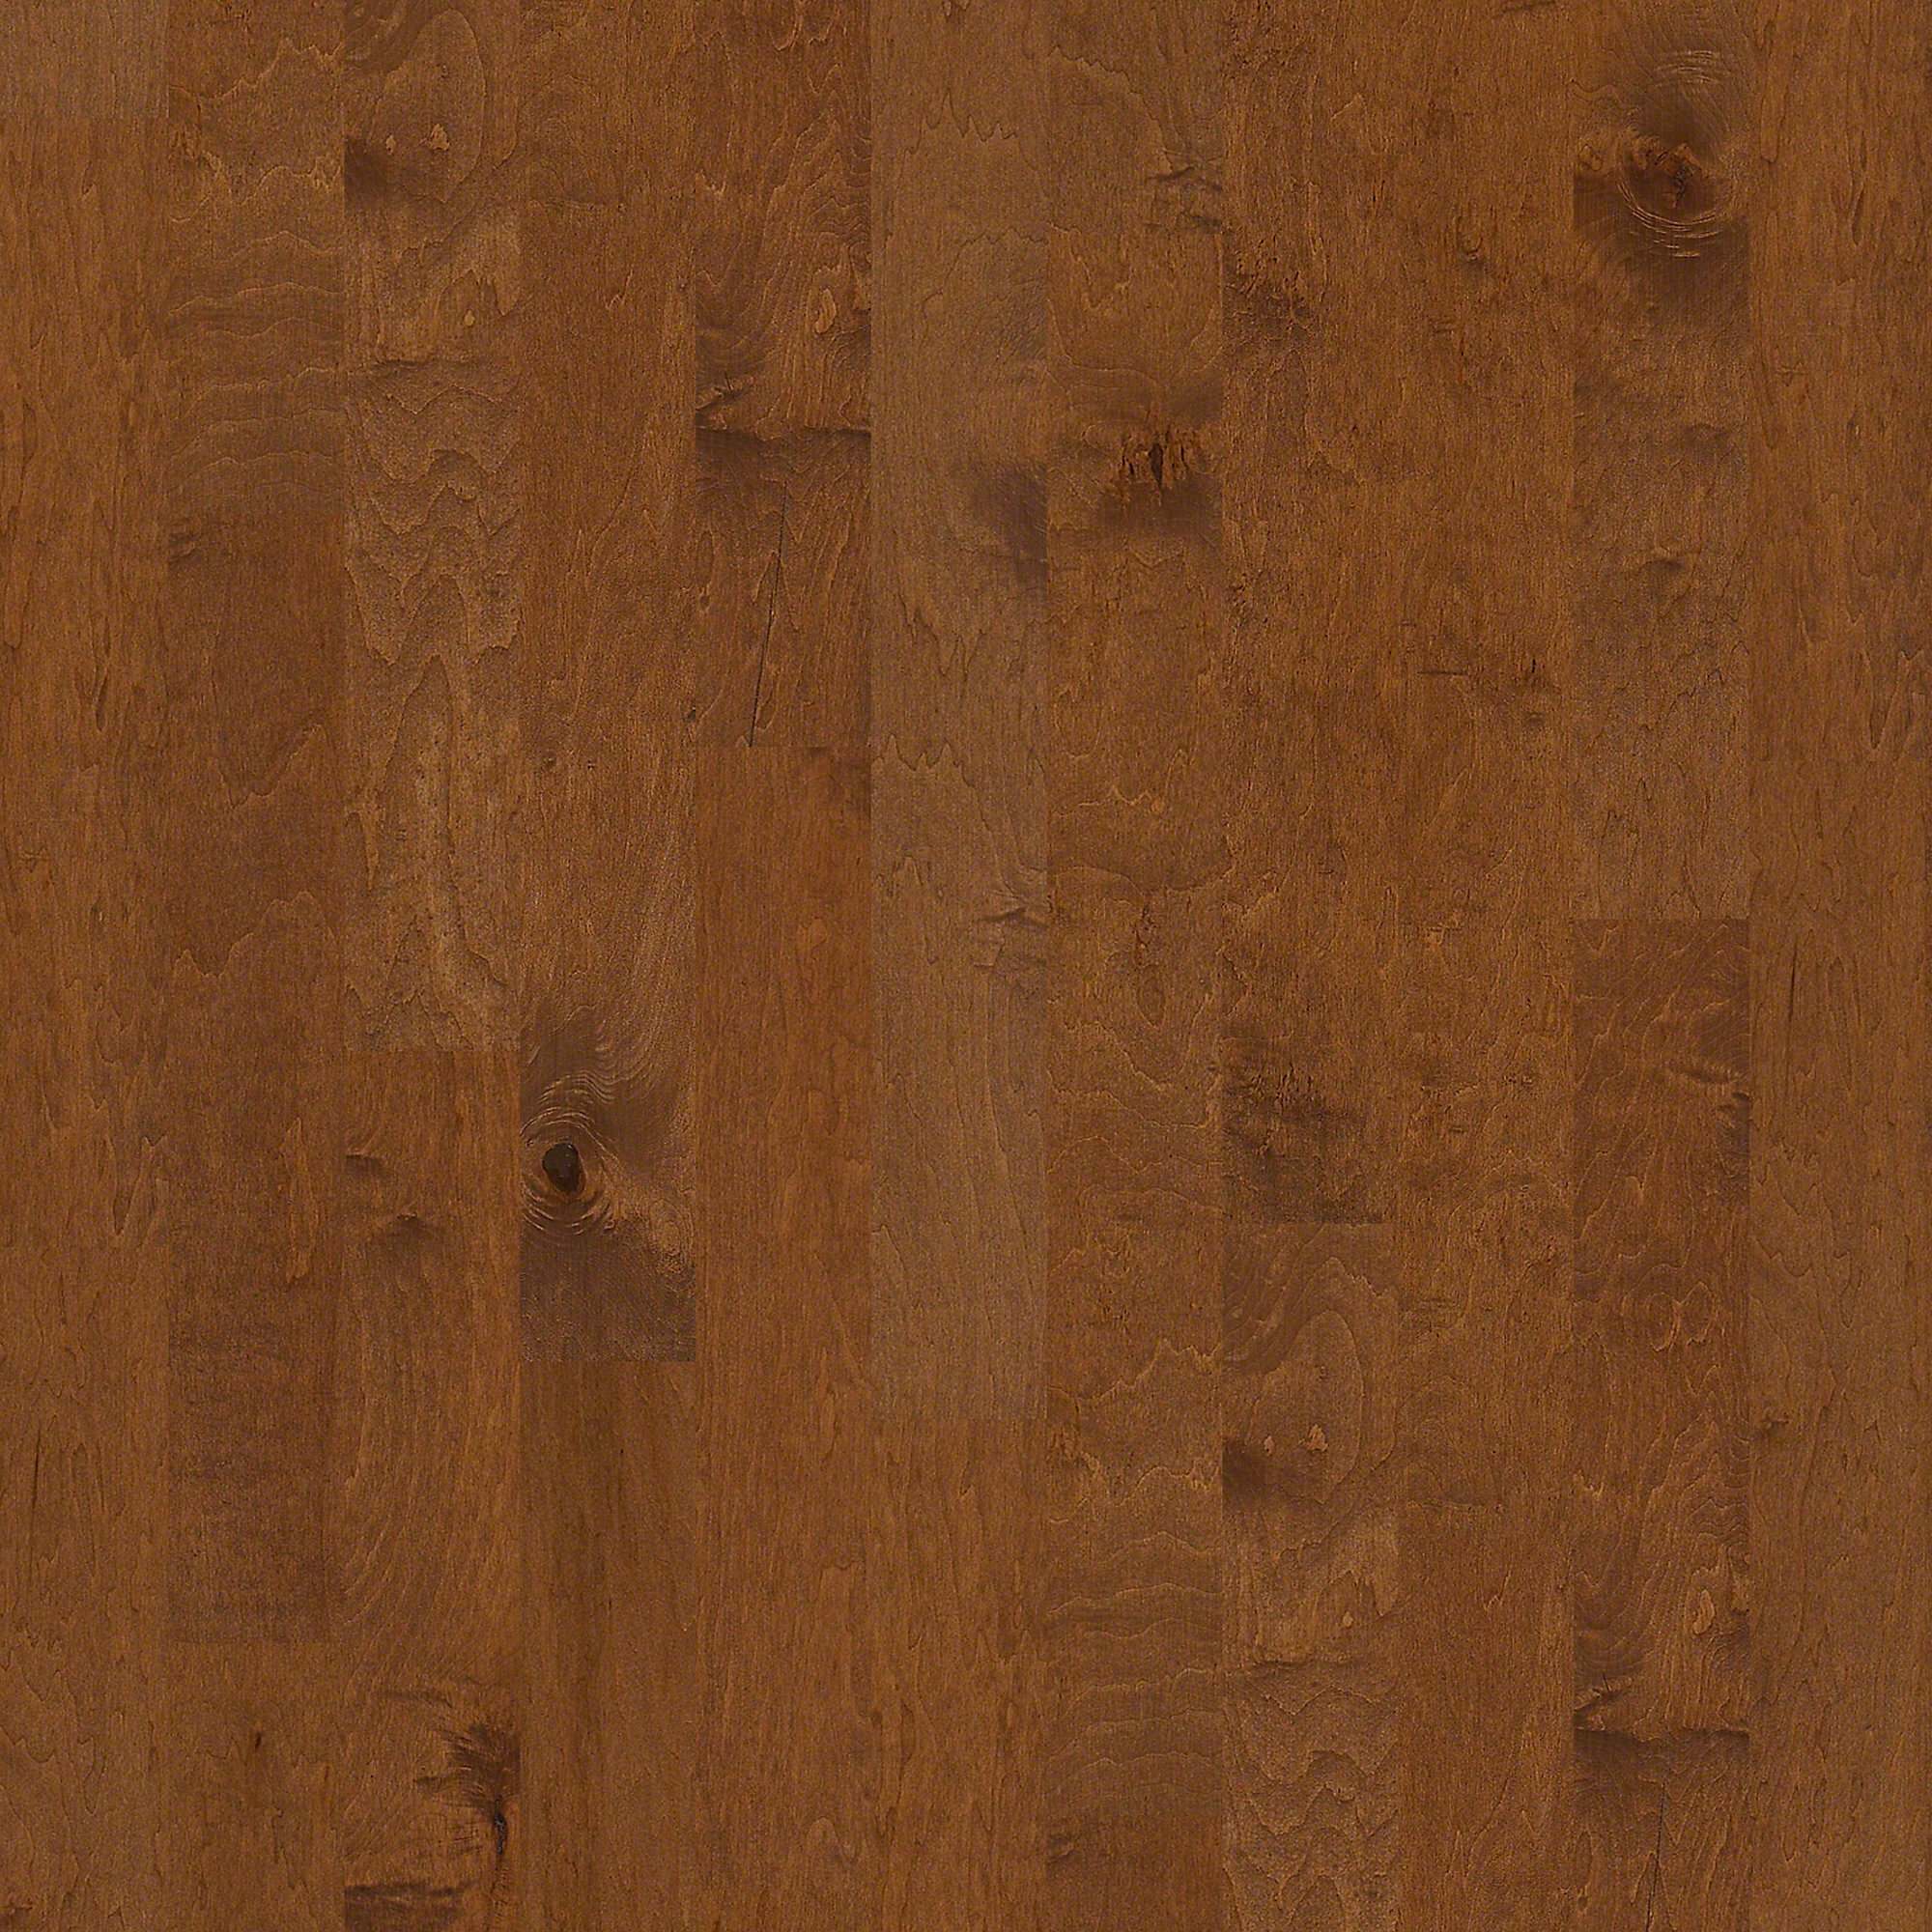 shop cinnamon floor hardwood pd sq engineered maple flooring ft style in selections